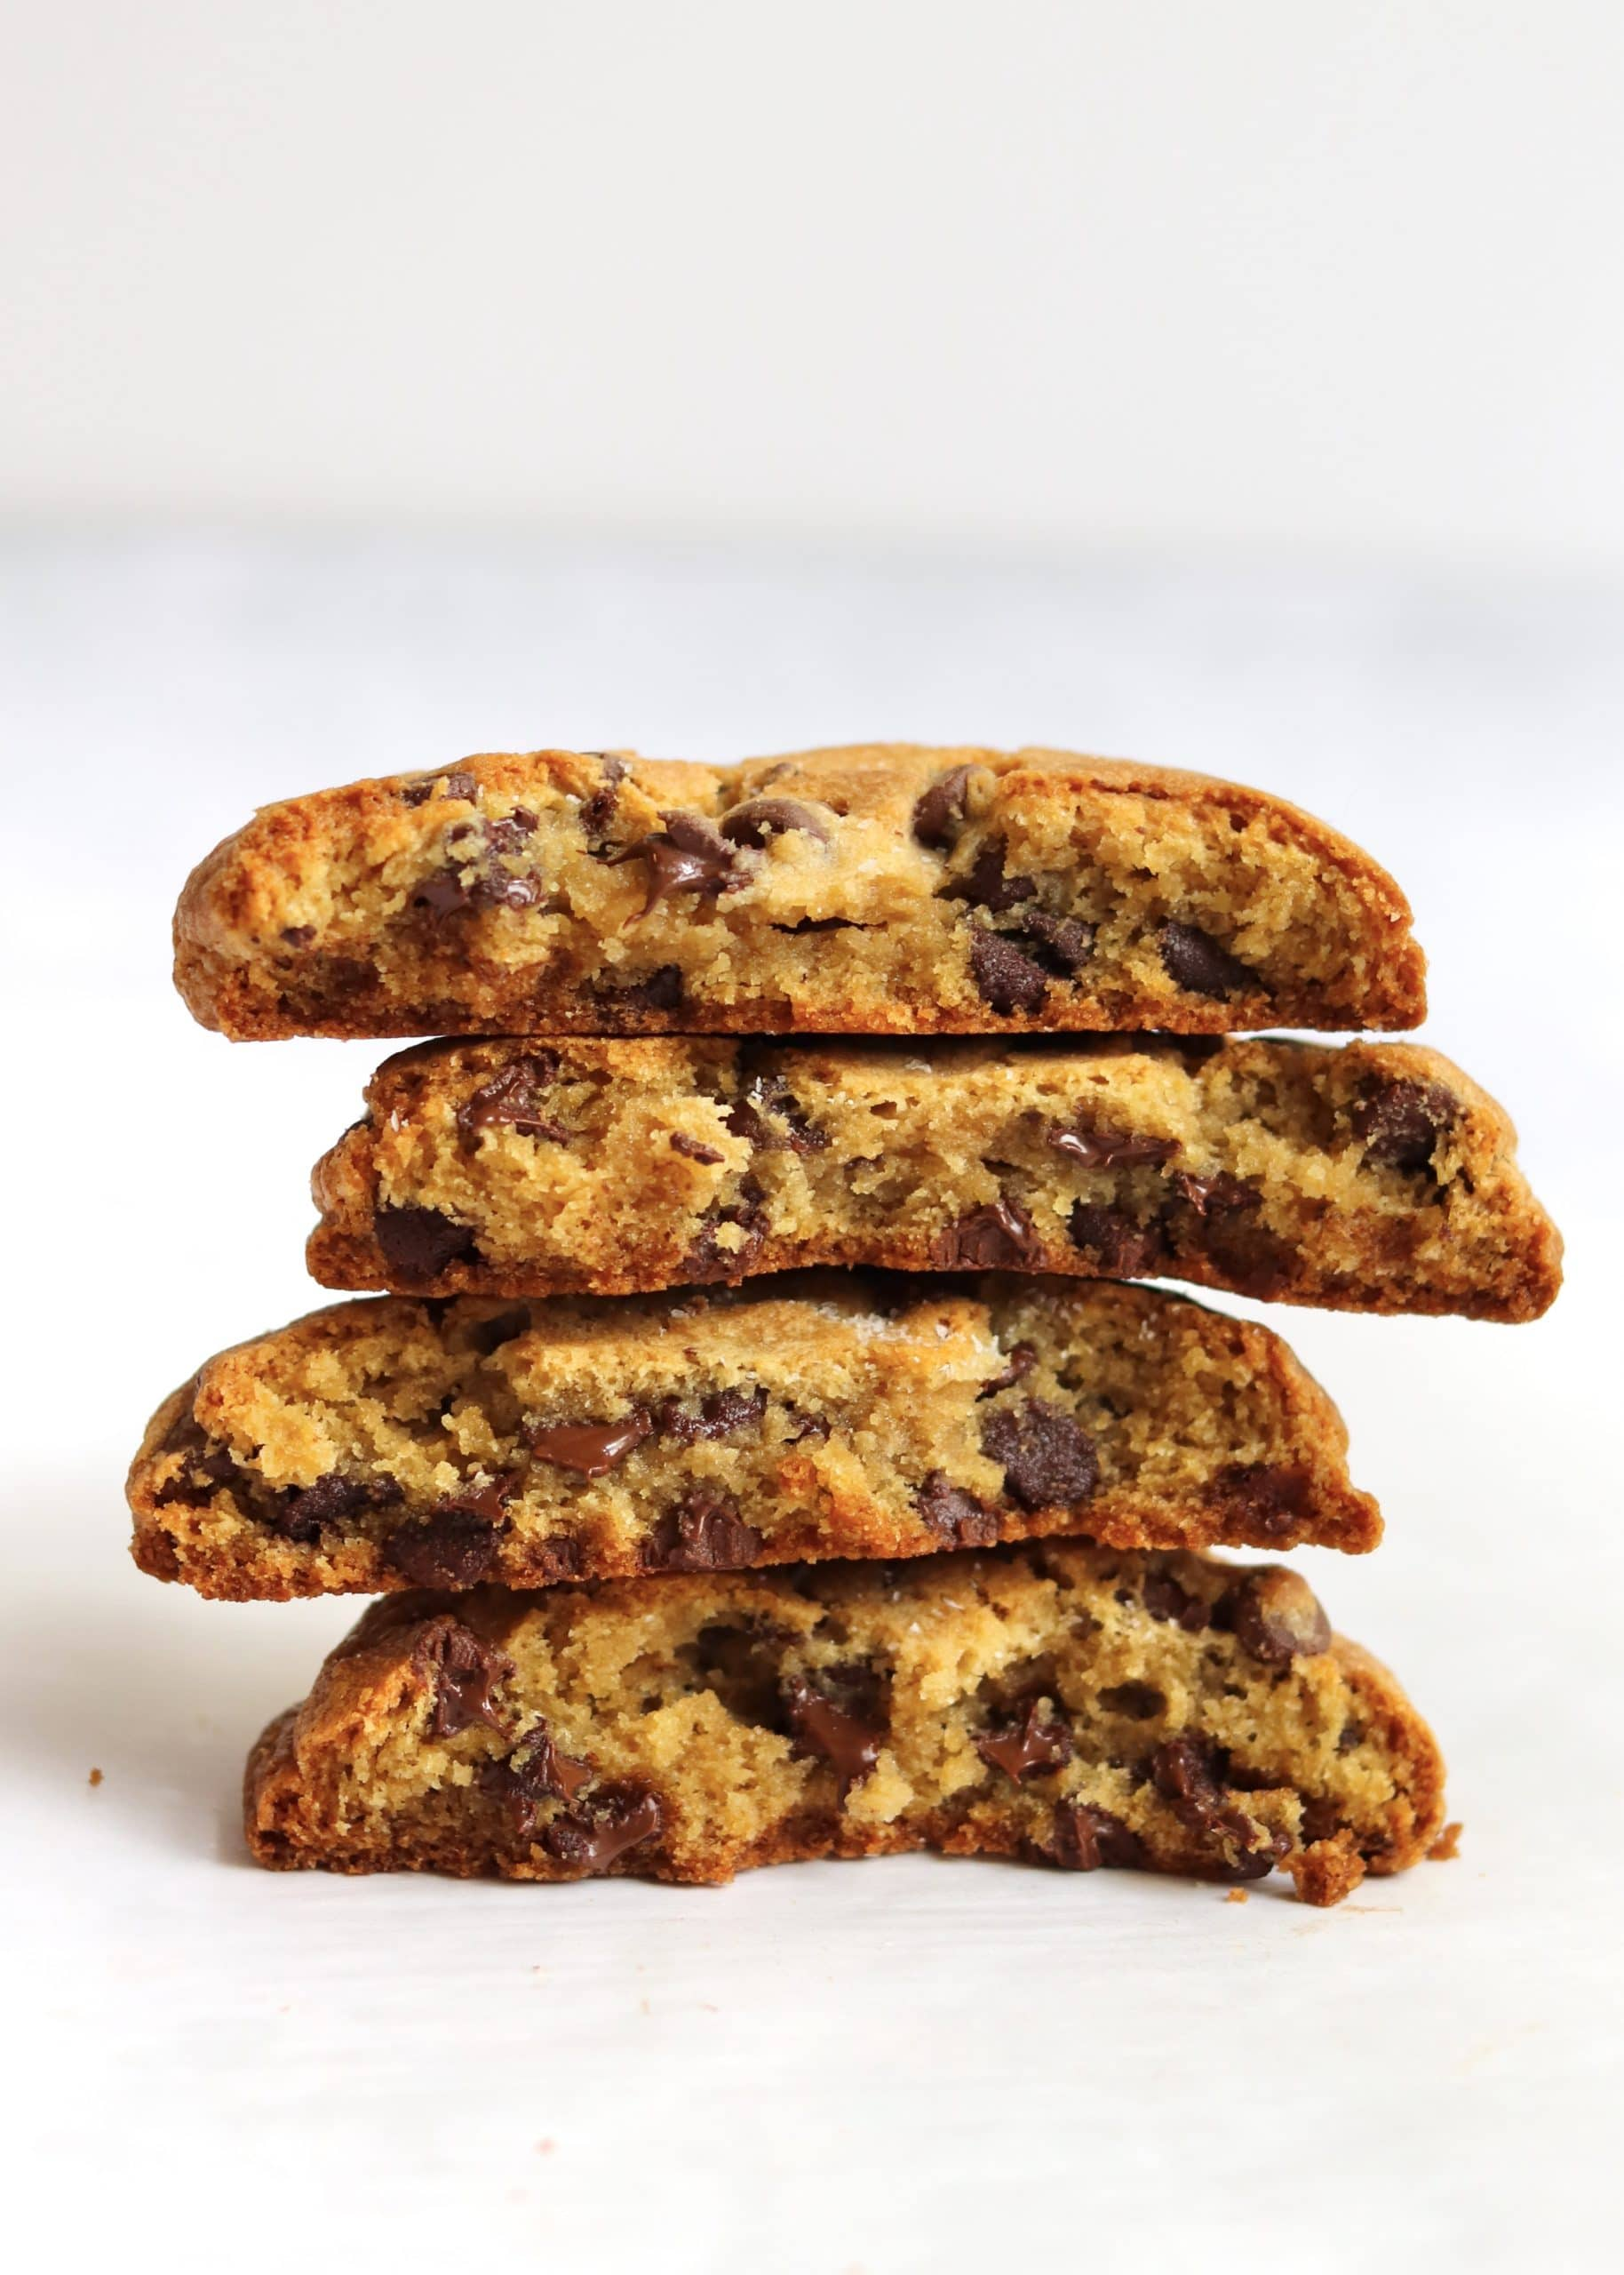 Stack of thick chocolate chip cookies